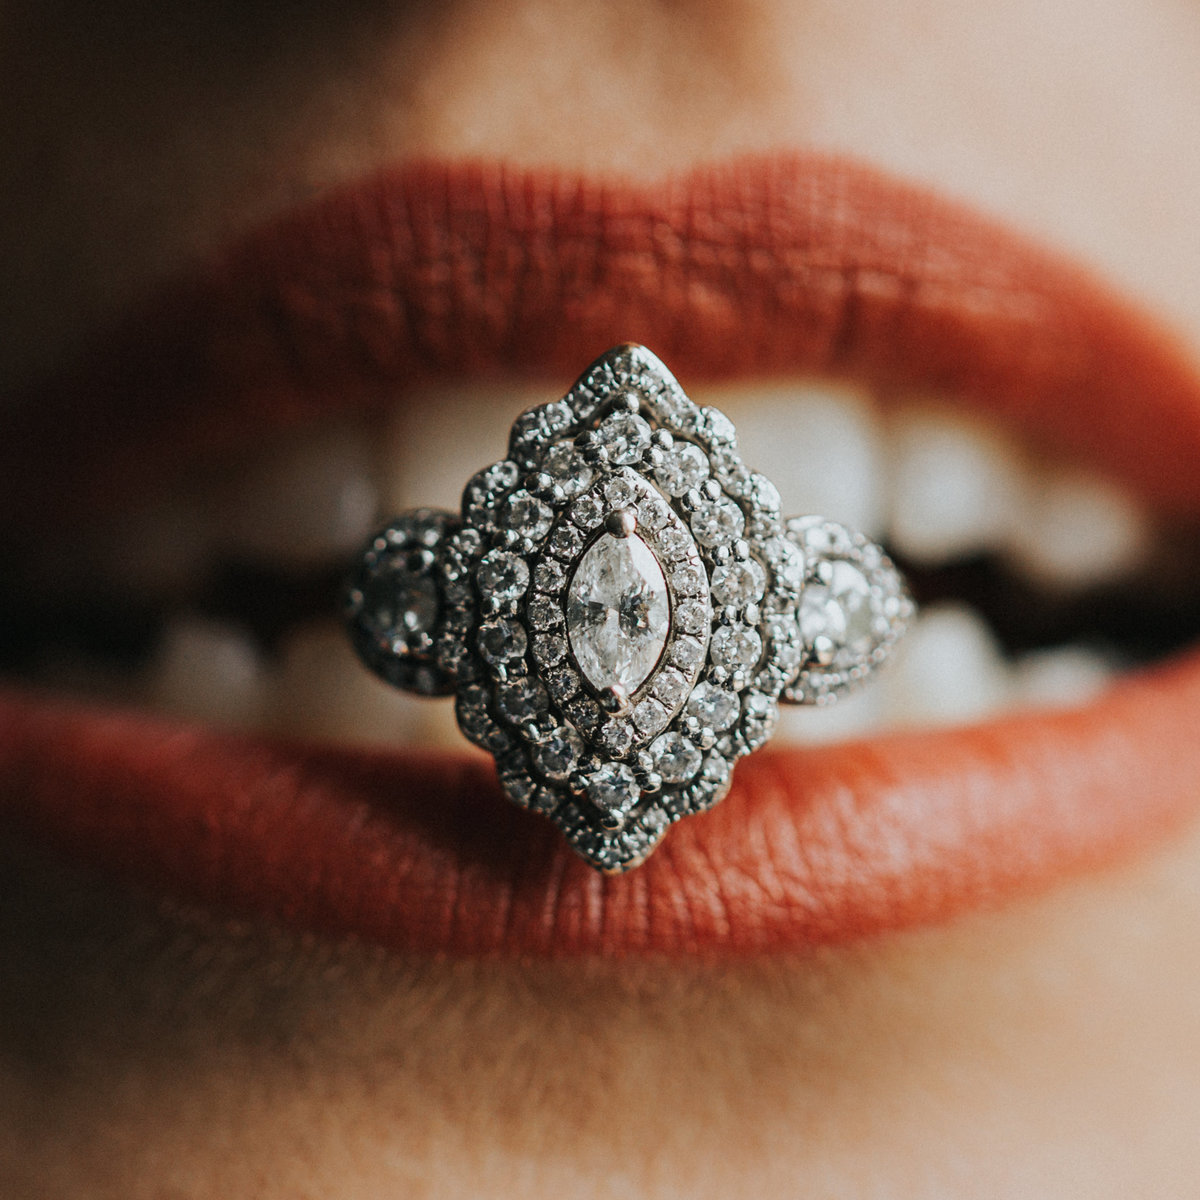 A bride holds her unique wedding ring between her teeth